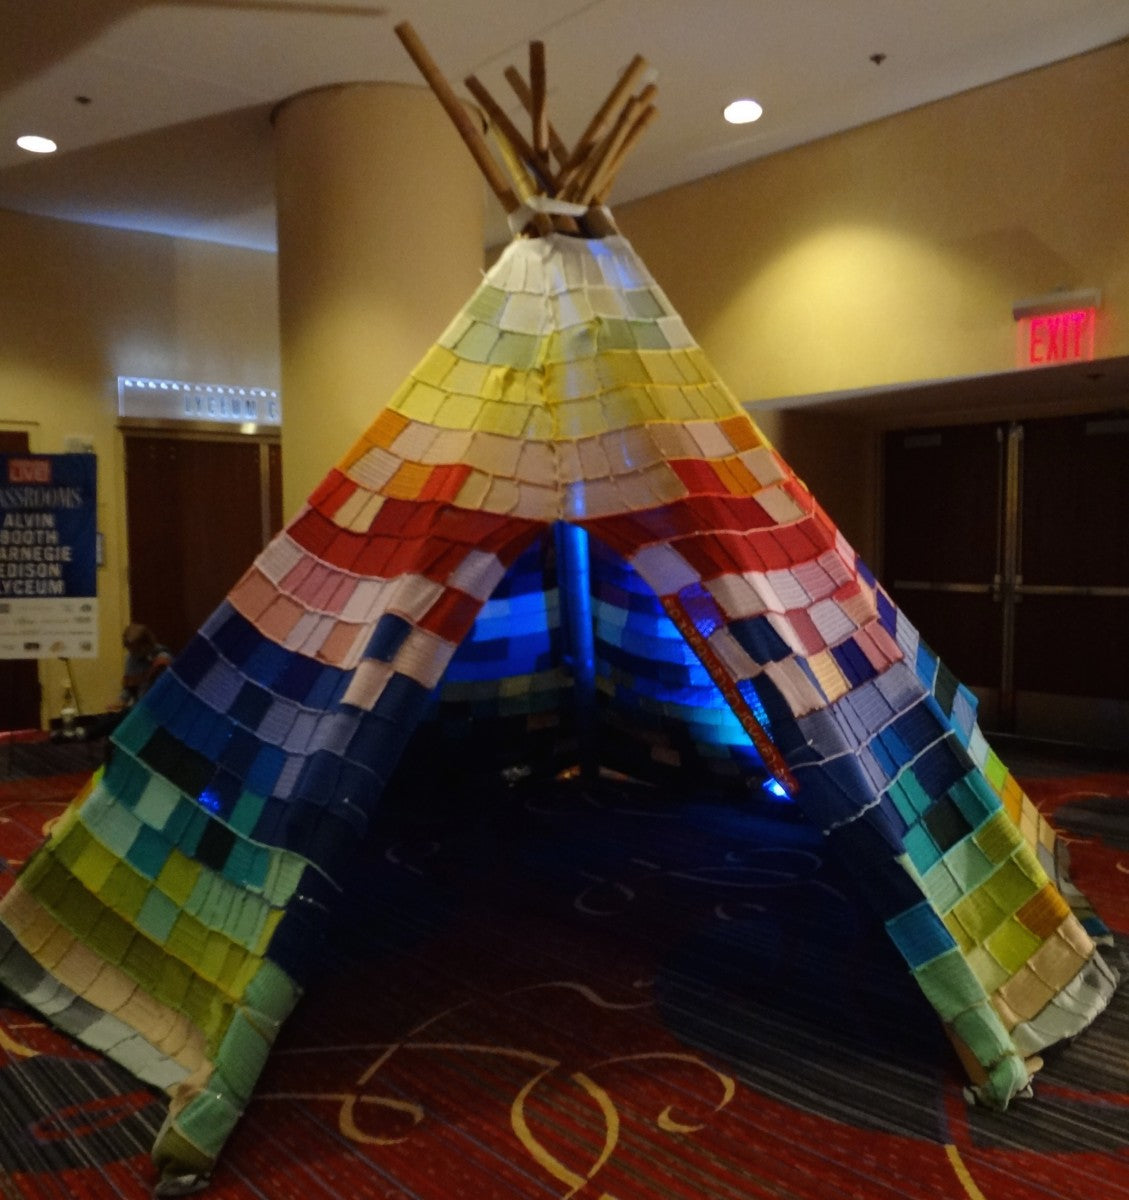 Knitted Teepee by Ute Lemmark